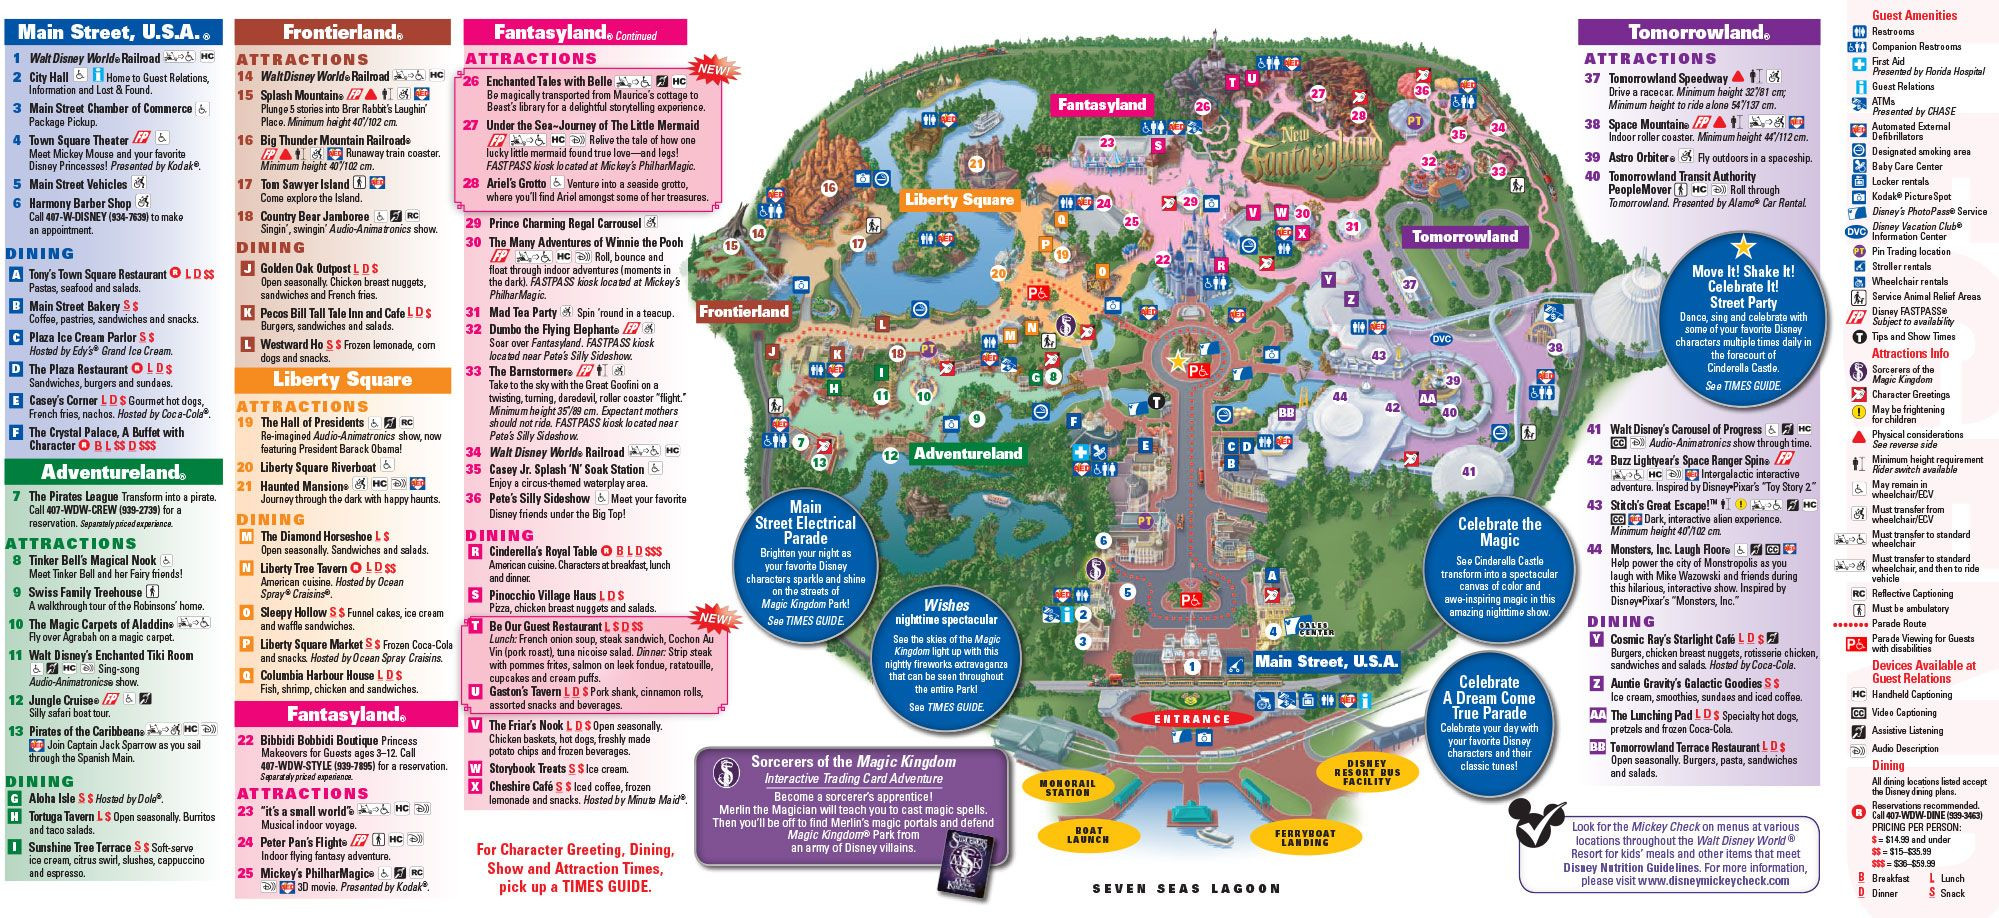 Printable Map Disneyland Lovely town Square theater This is the Very First Building to the Far